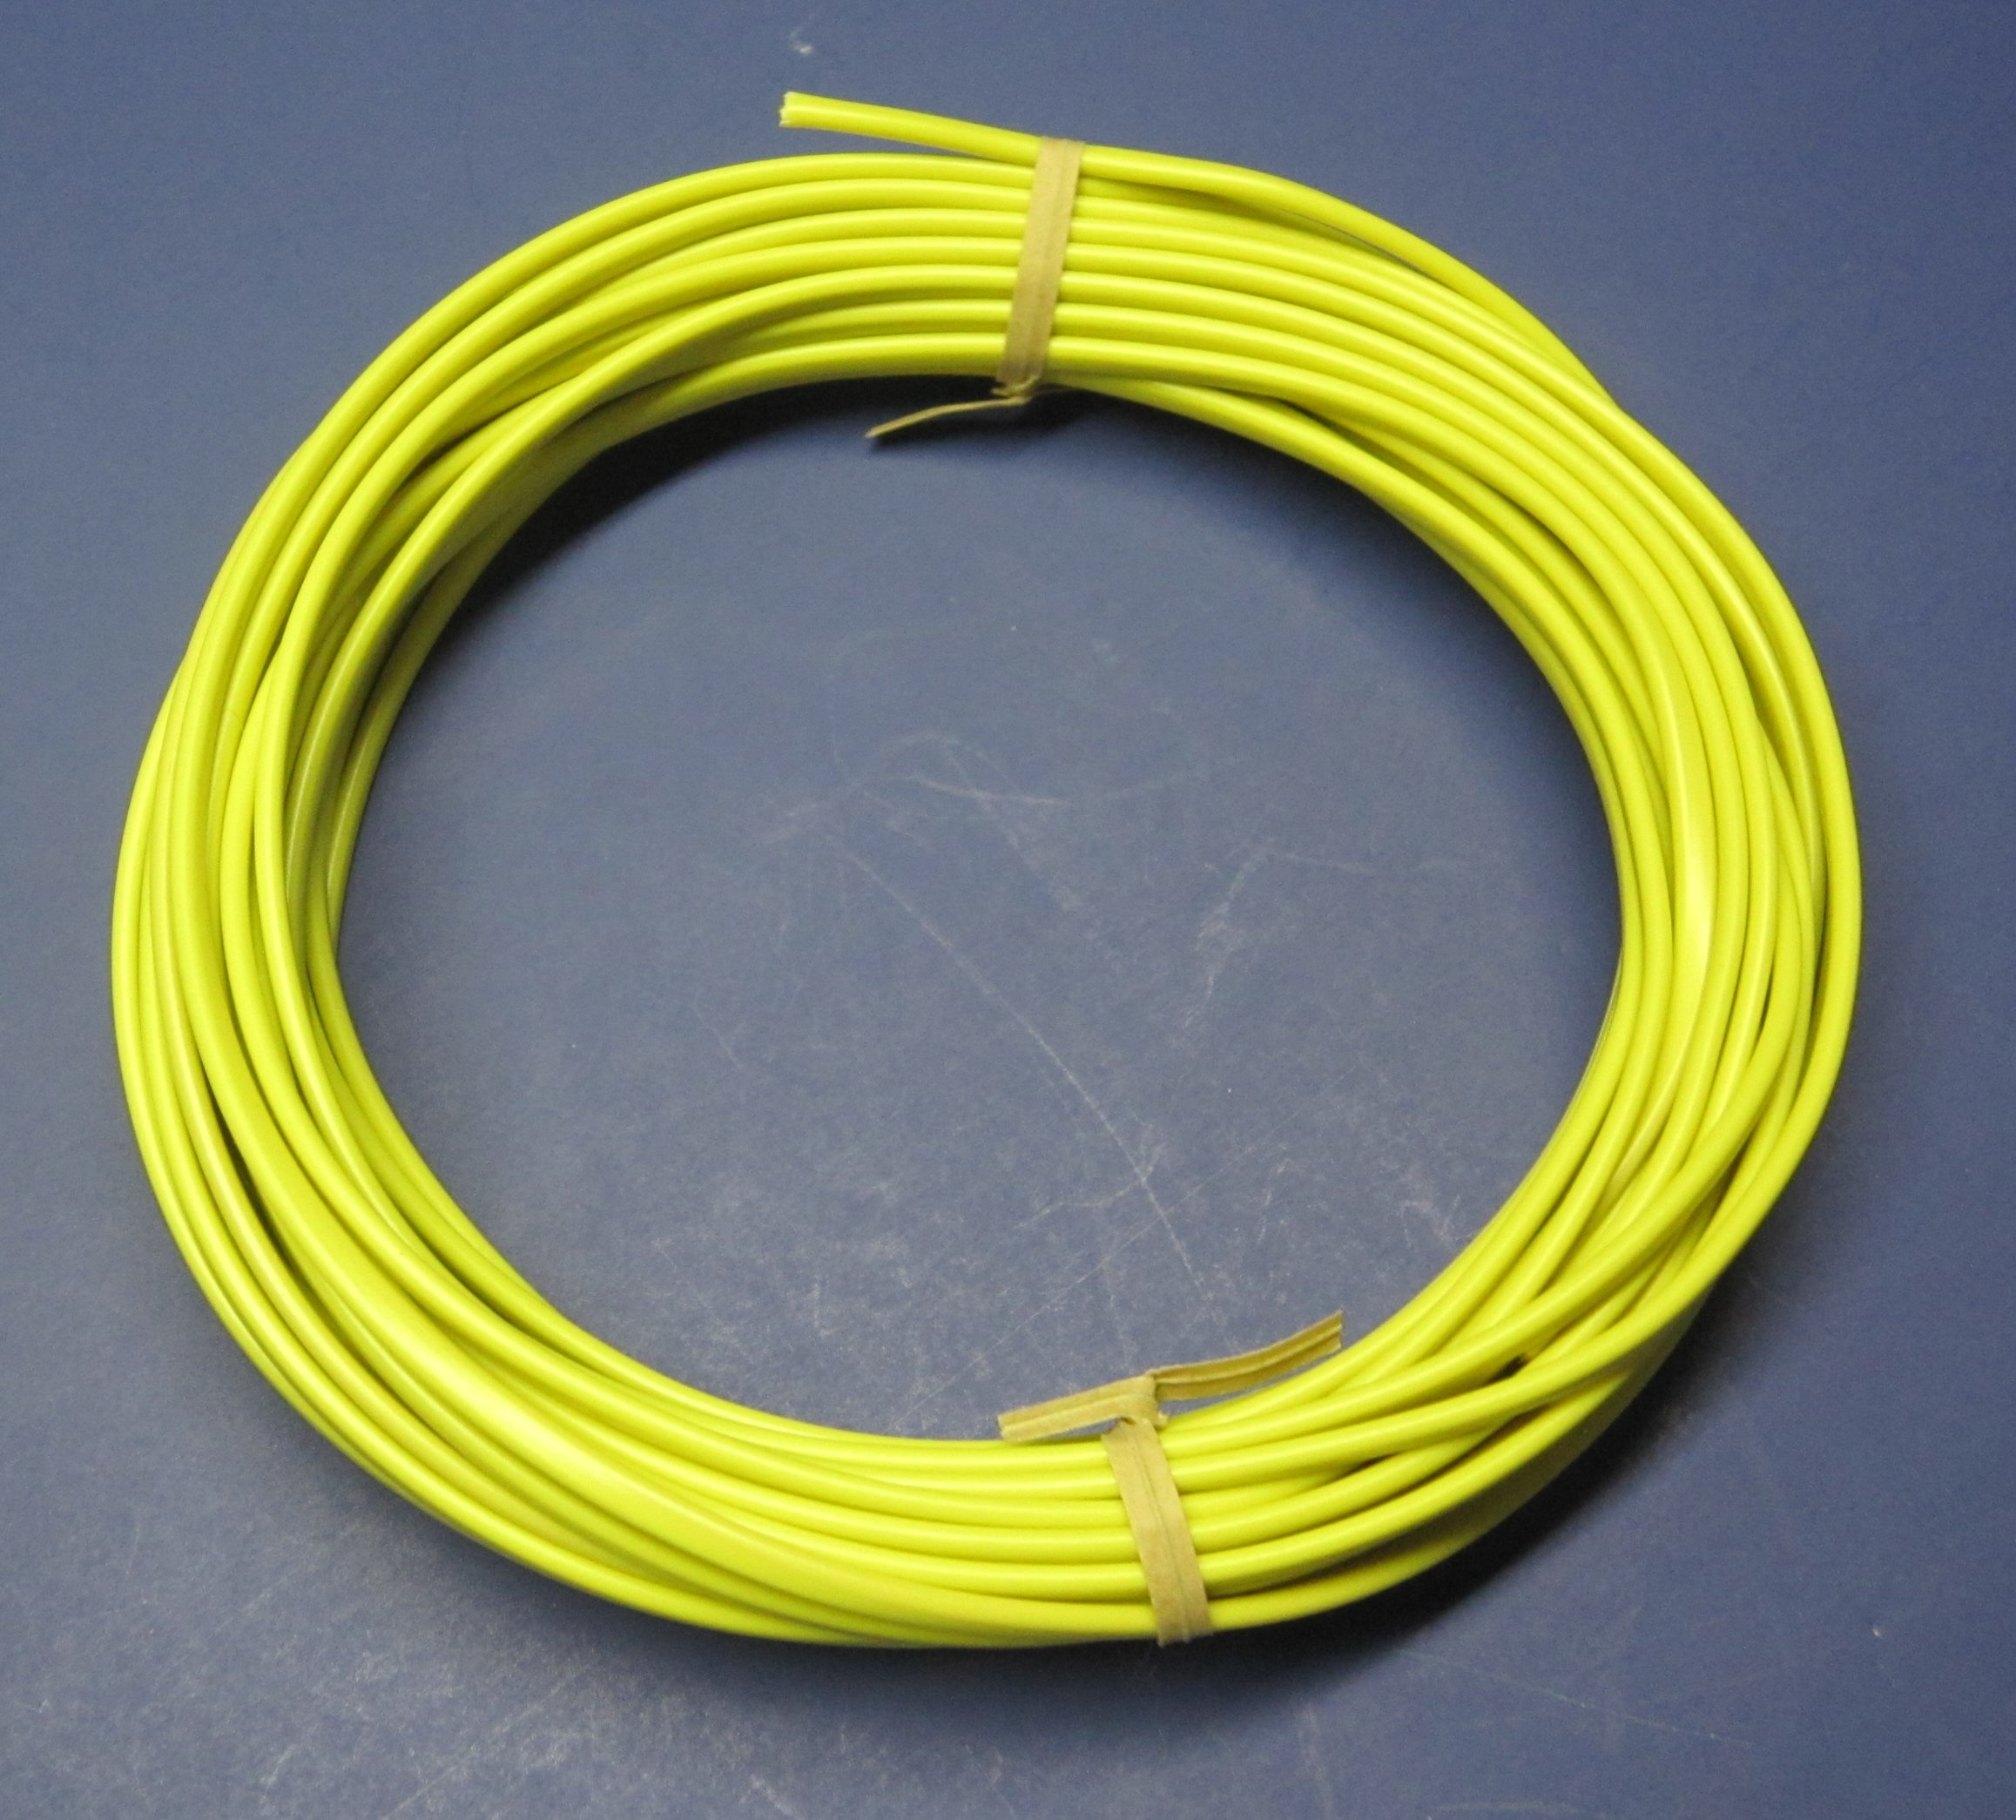 Cheap Type B Thermocouple Wire Find Deals Thermo Couple Wiring Get Quotations K Awg 24 Solid W Pvc Insulation 10 Yard Roll